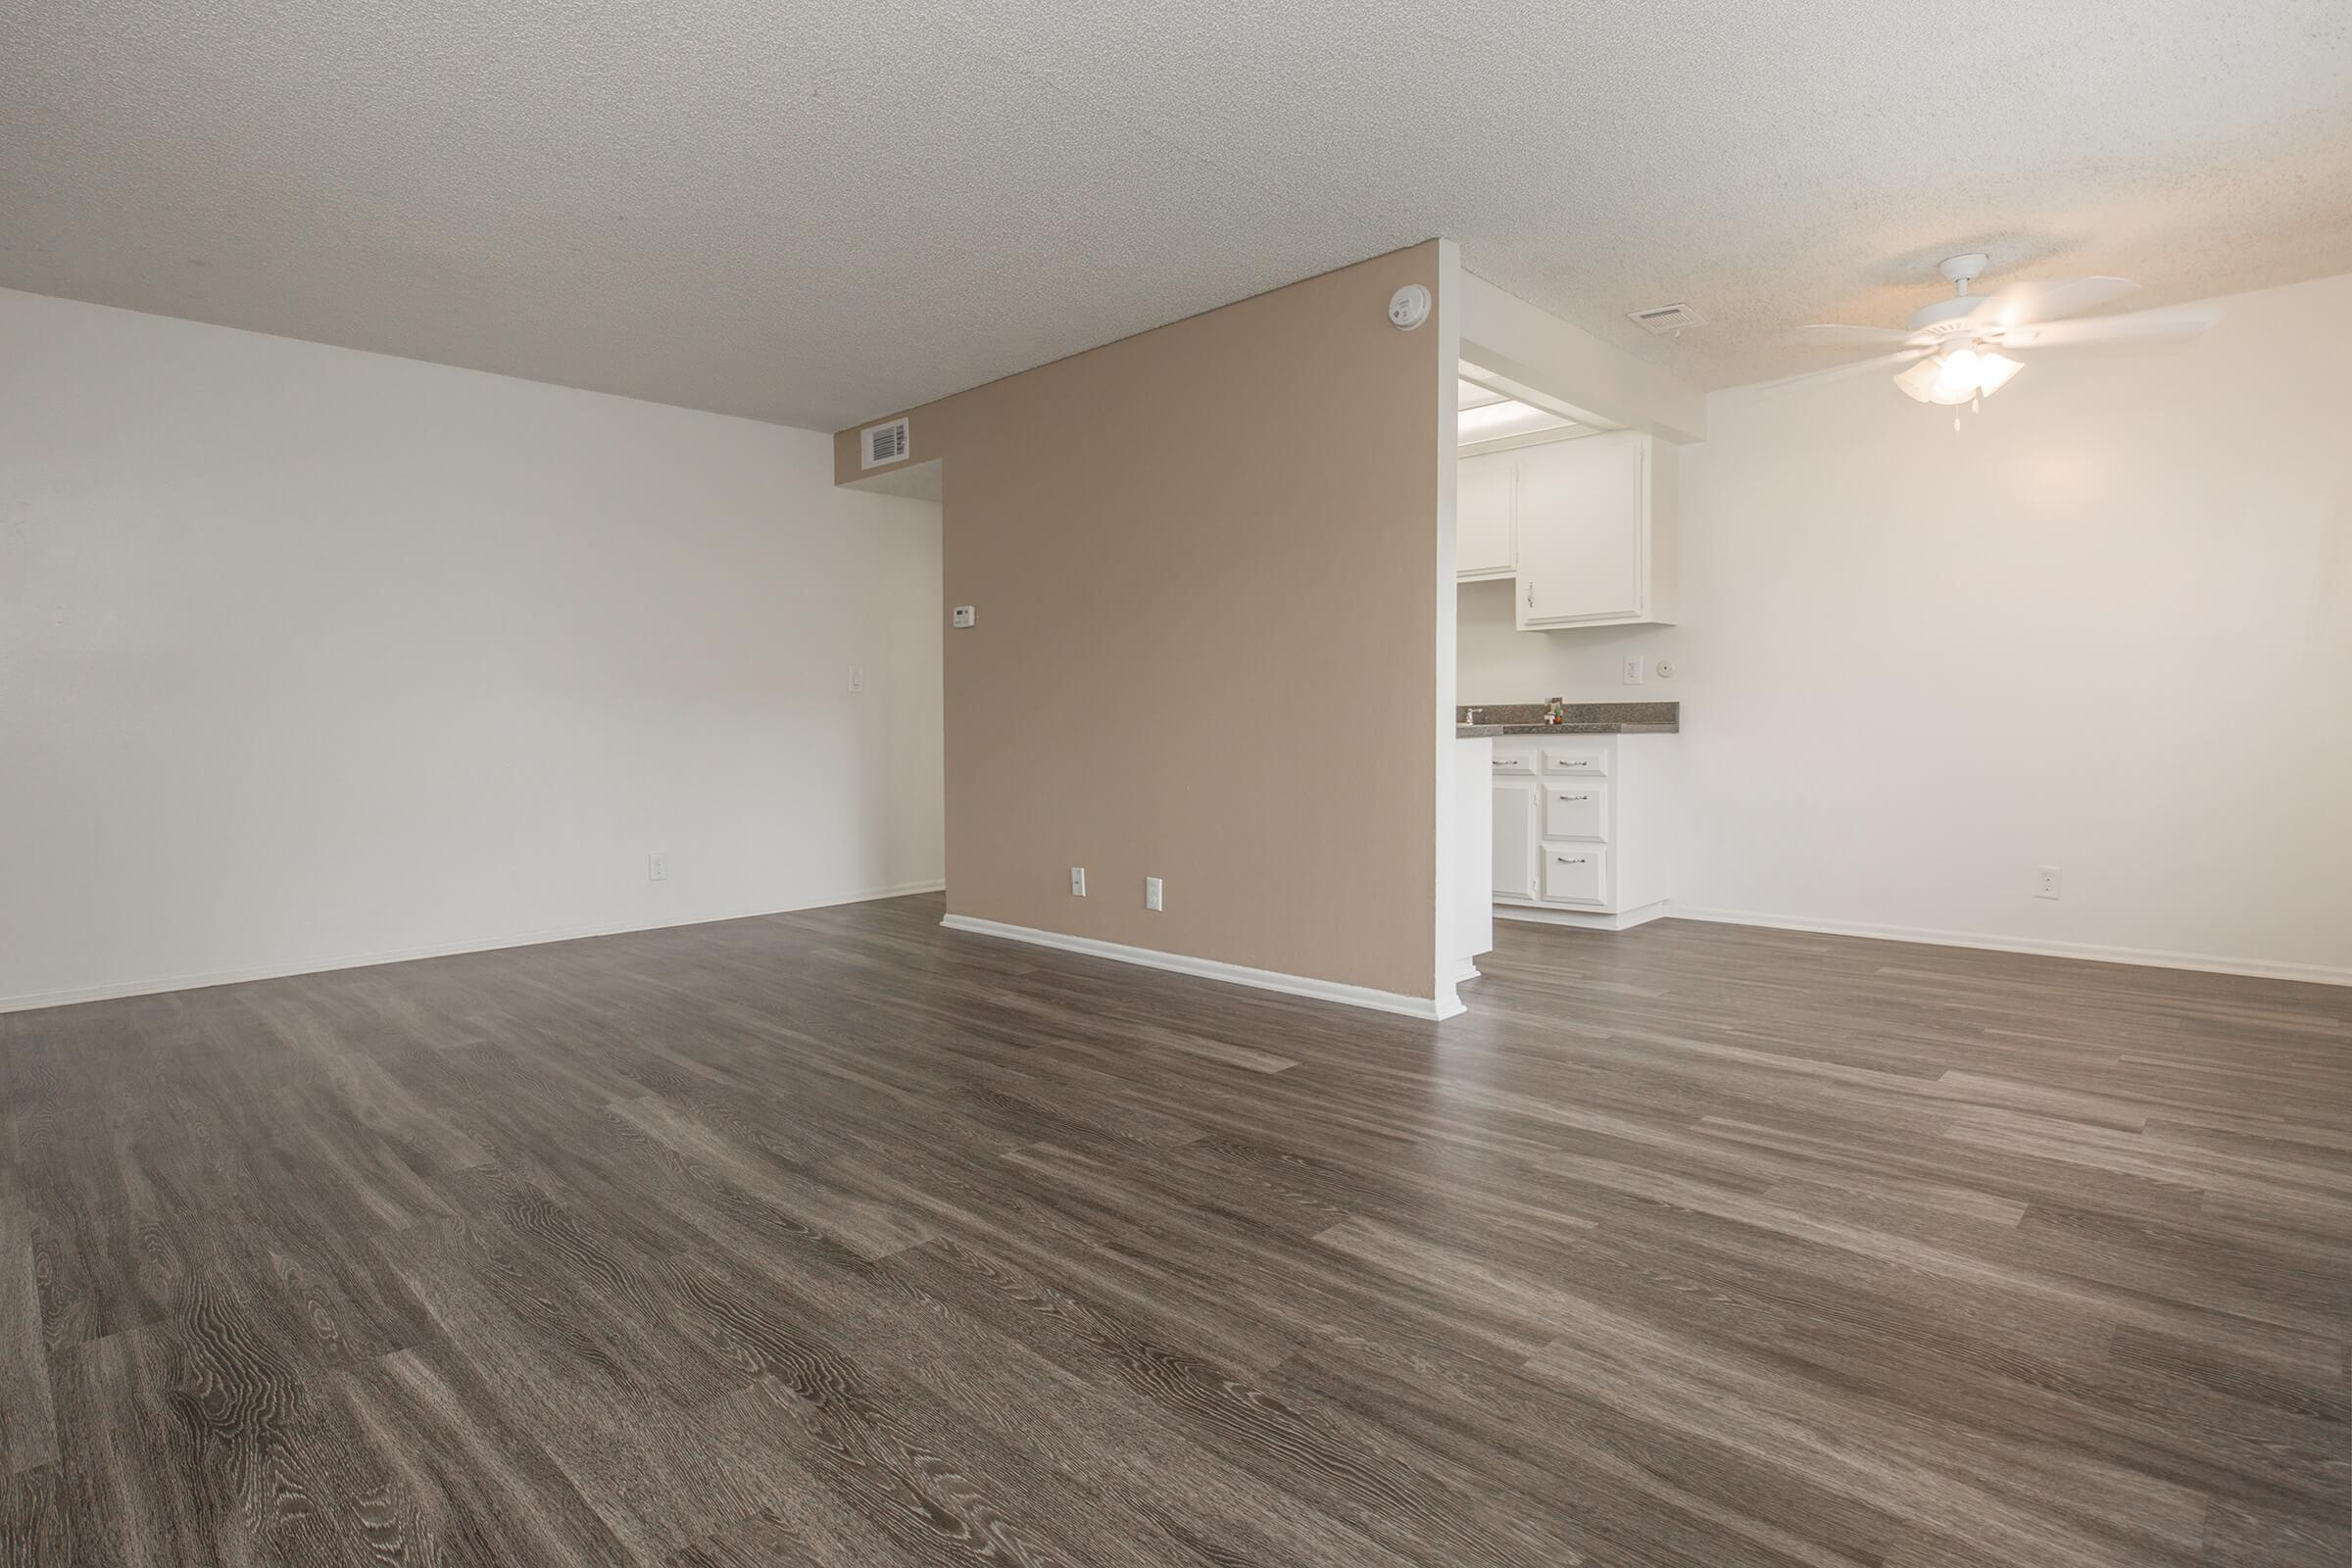 Unfurnished living room and kitchen